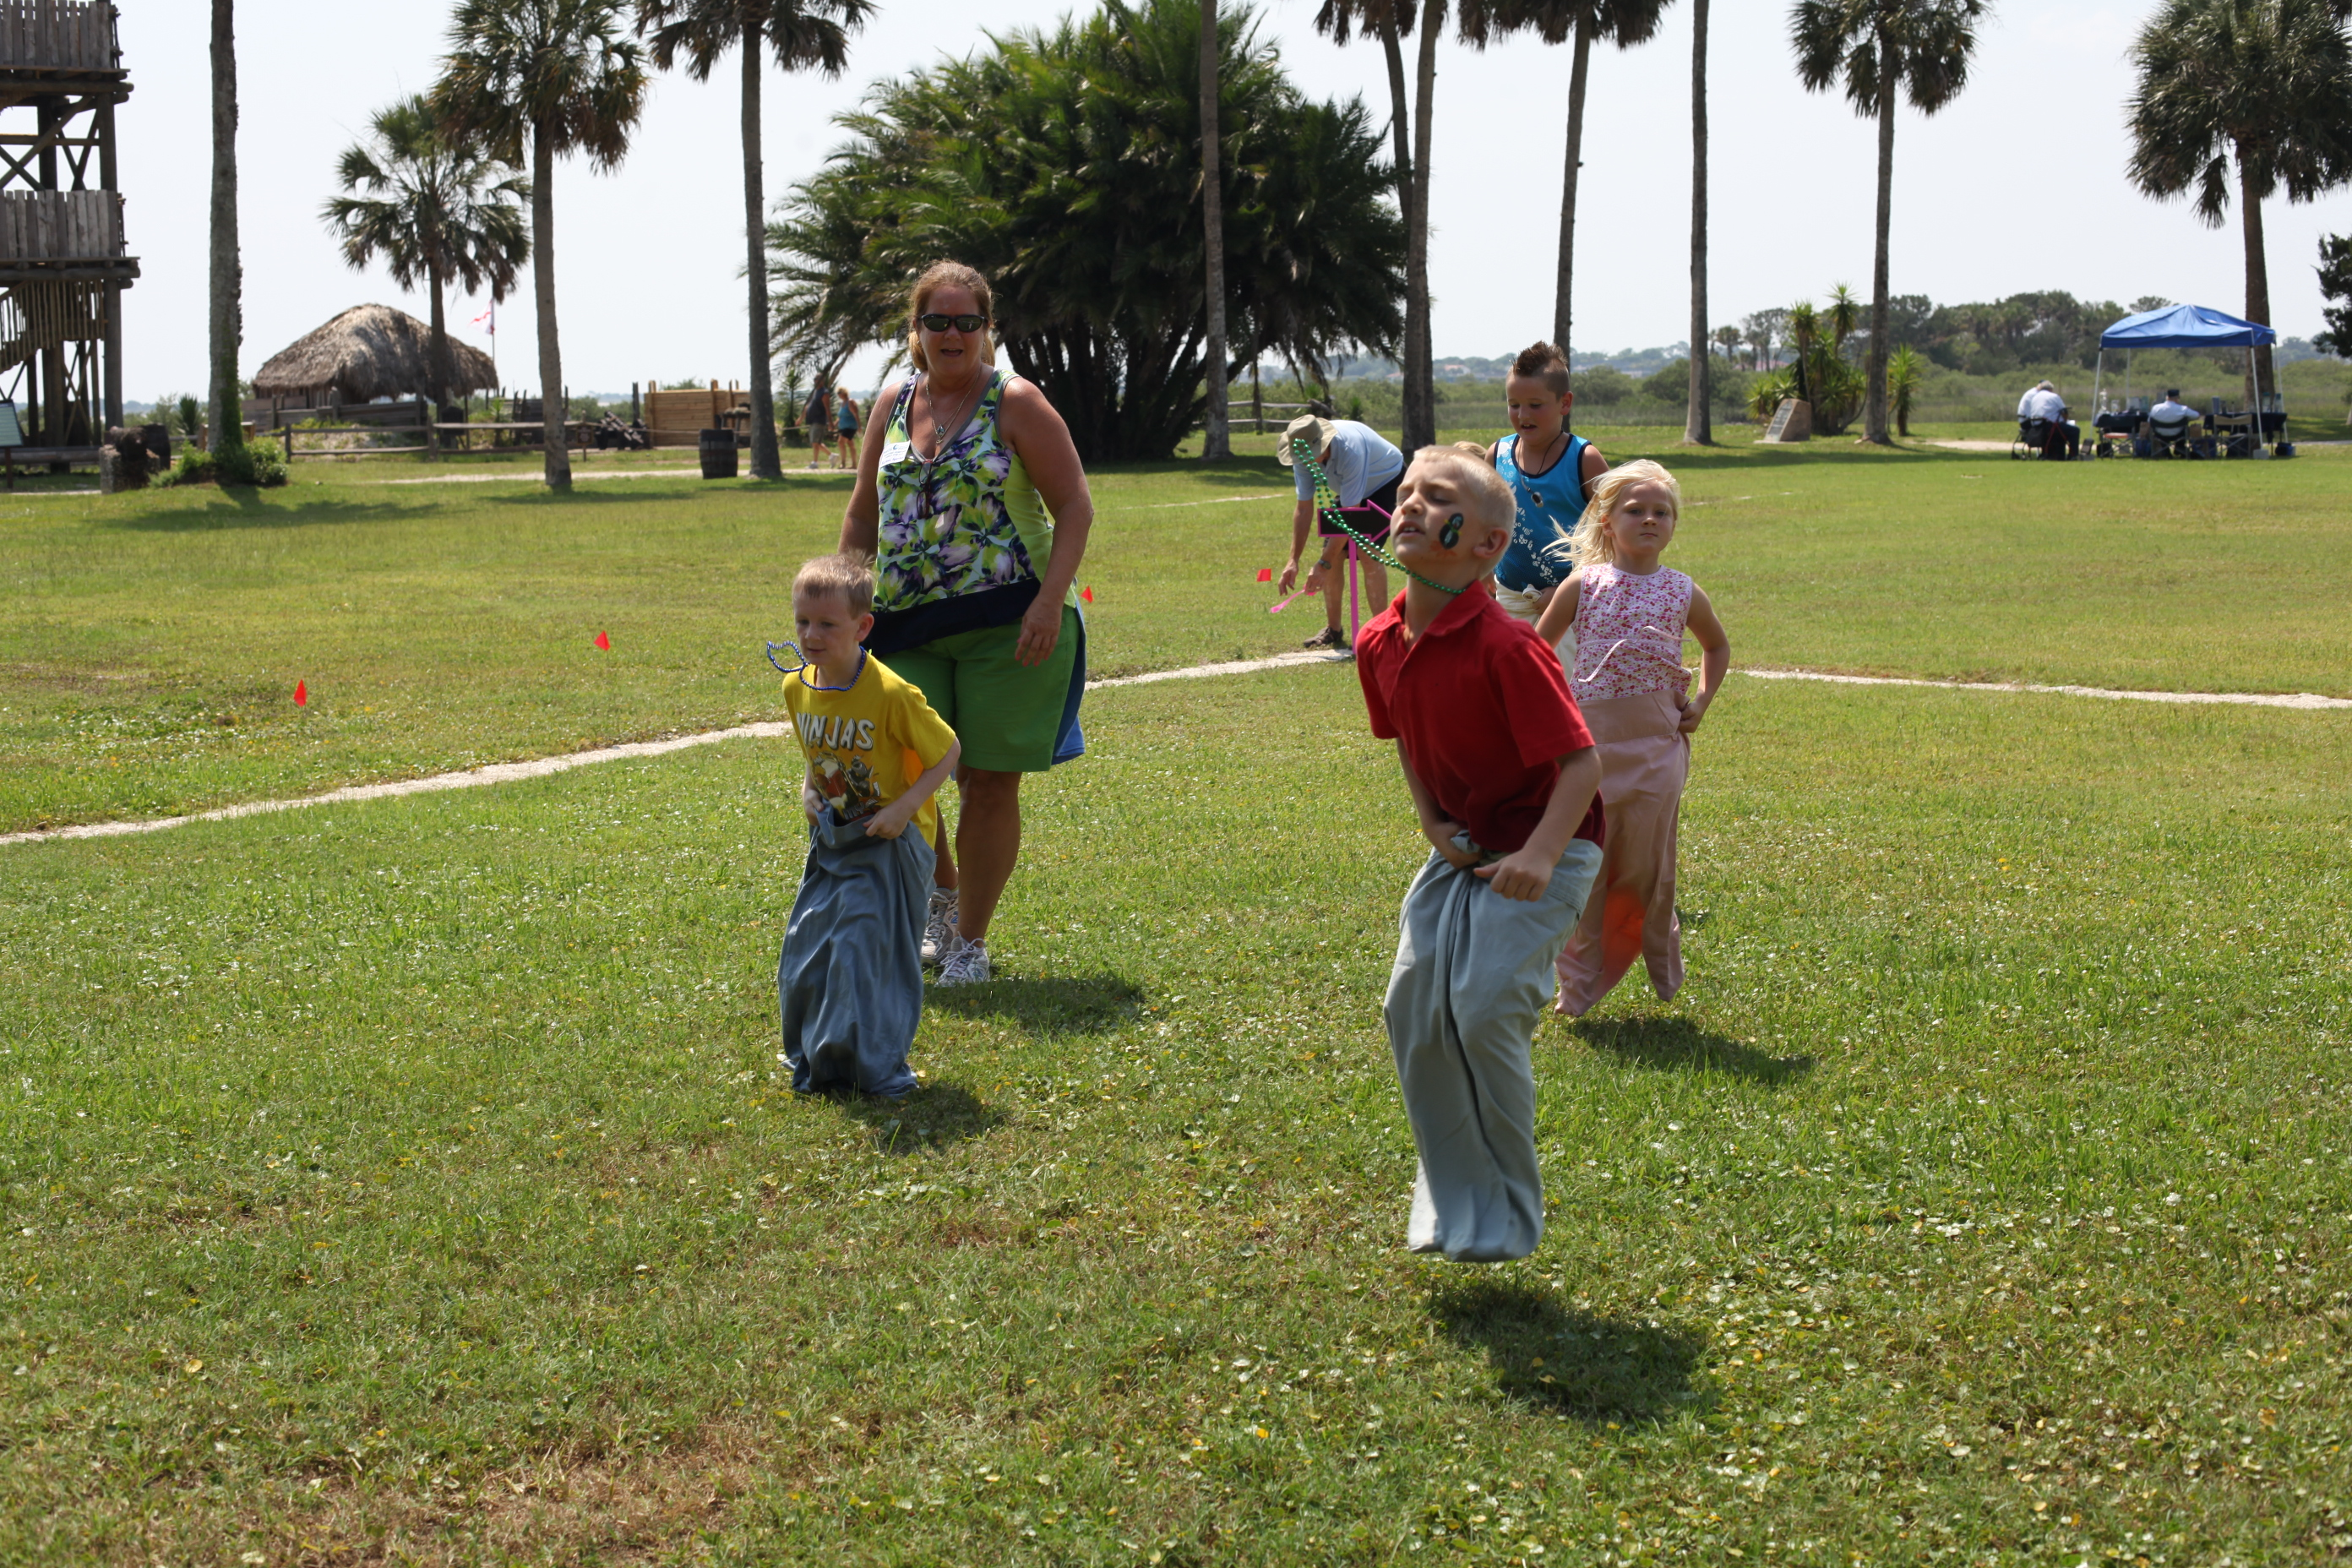 Children participate in a sack race on June 22 during the Maritime Heritage Family Fun Event at the Fountain of Youth in St. Augustine. Photos by RENEE UNSWORTH